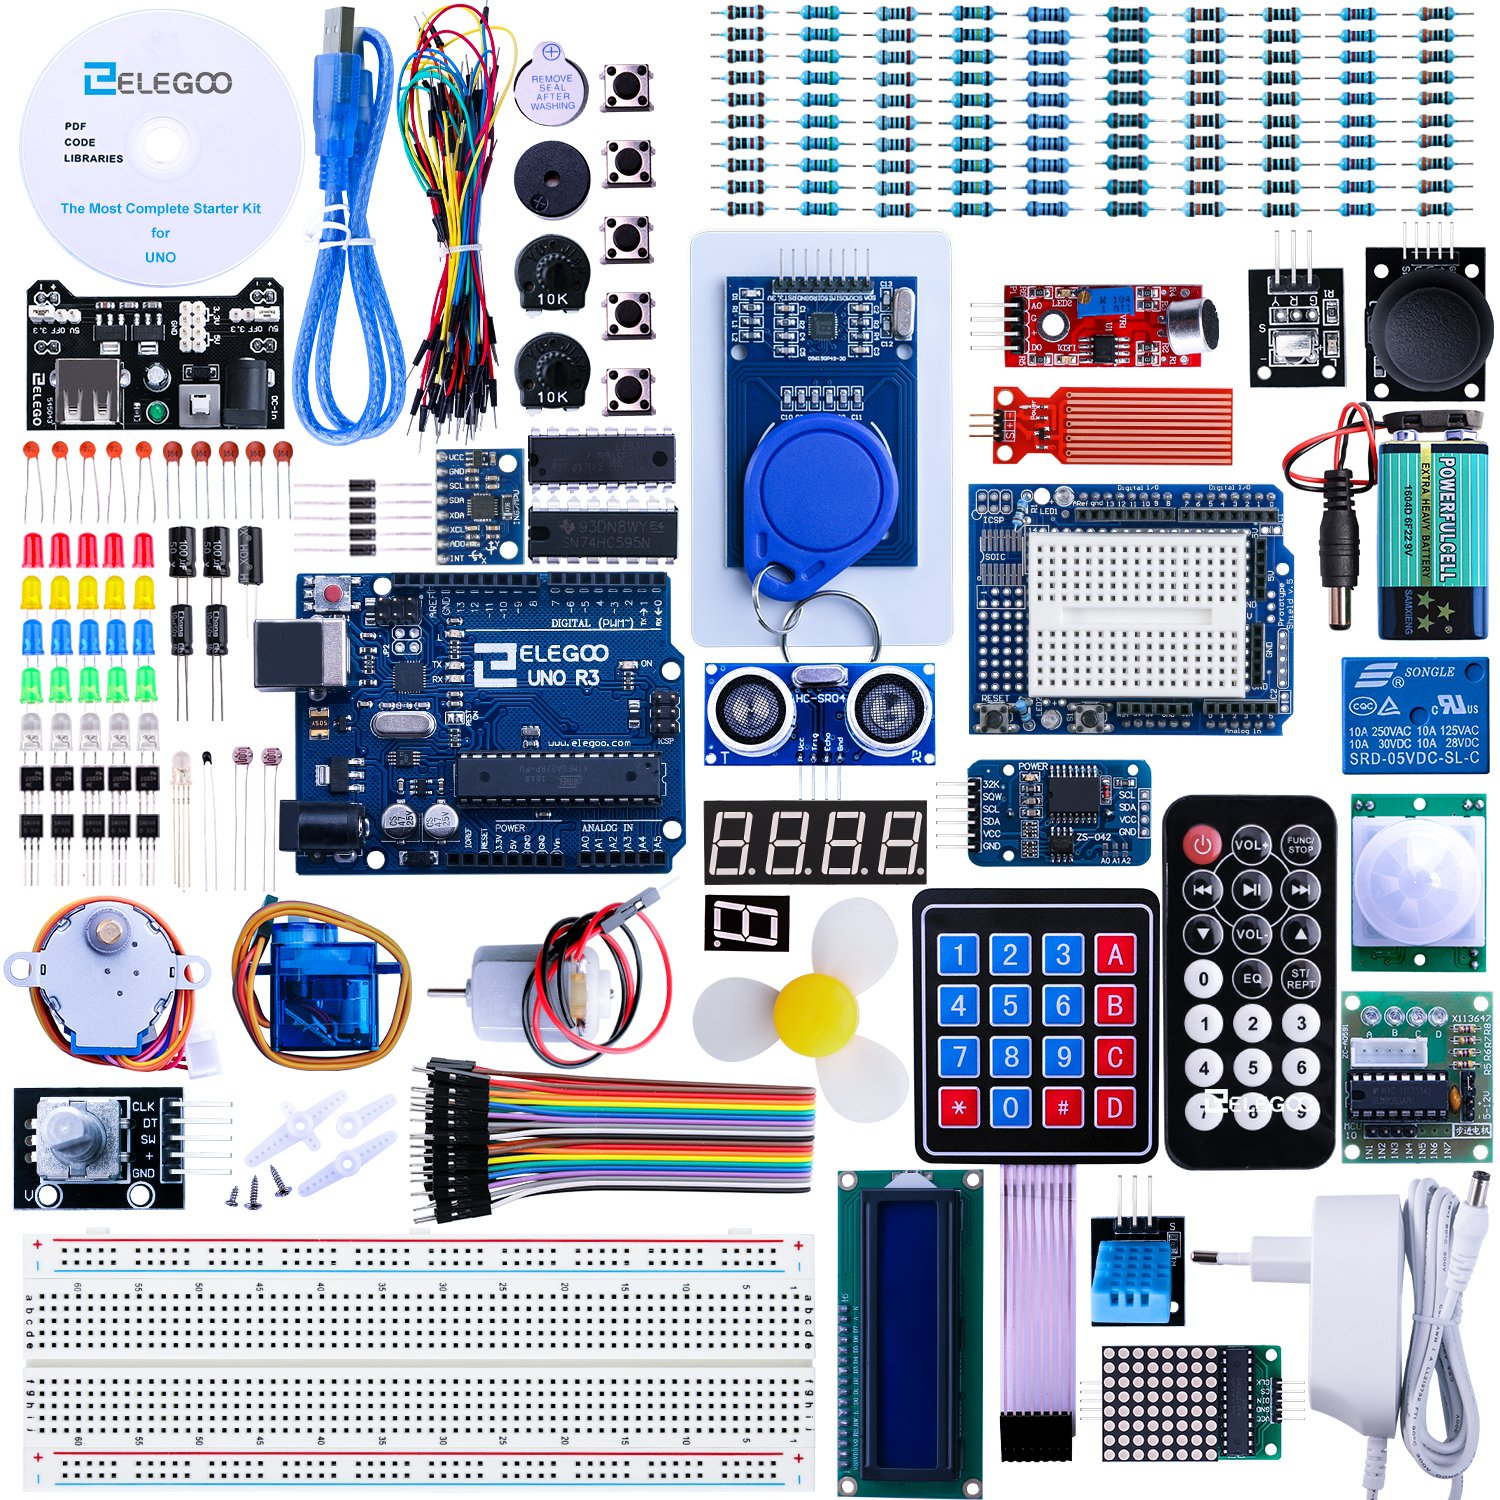 ELEGOO Arduino Carte UNO R3 Starter Kit de Démarrage Ultime avec Manuel d'Utilisation Français Le Plus Complet pour Débutants et Professionnels DIY